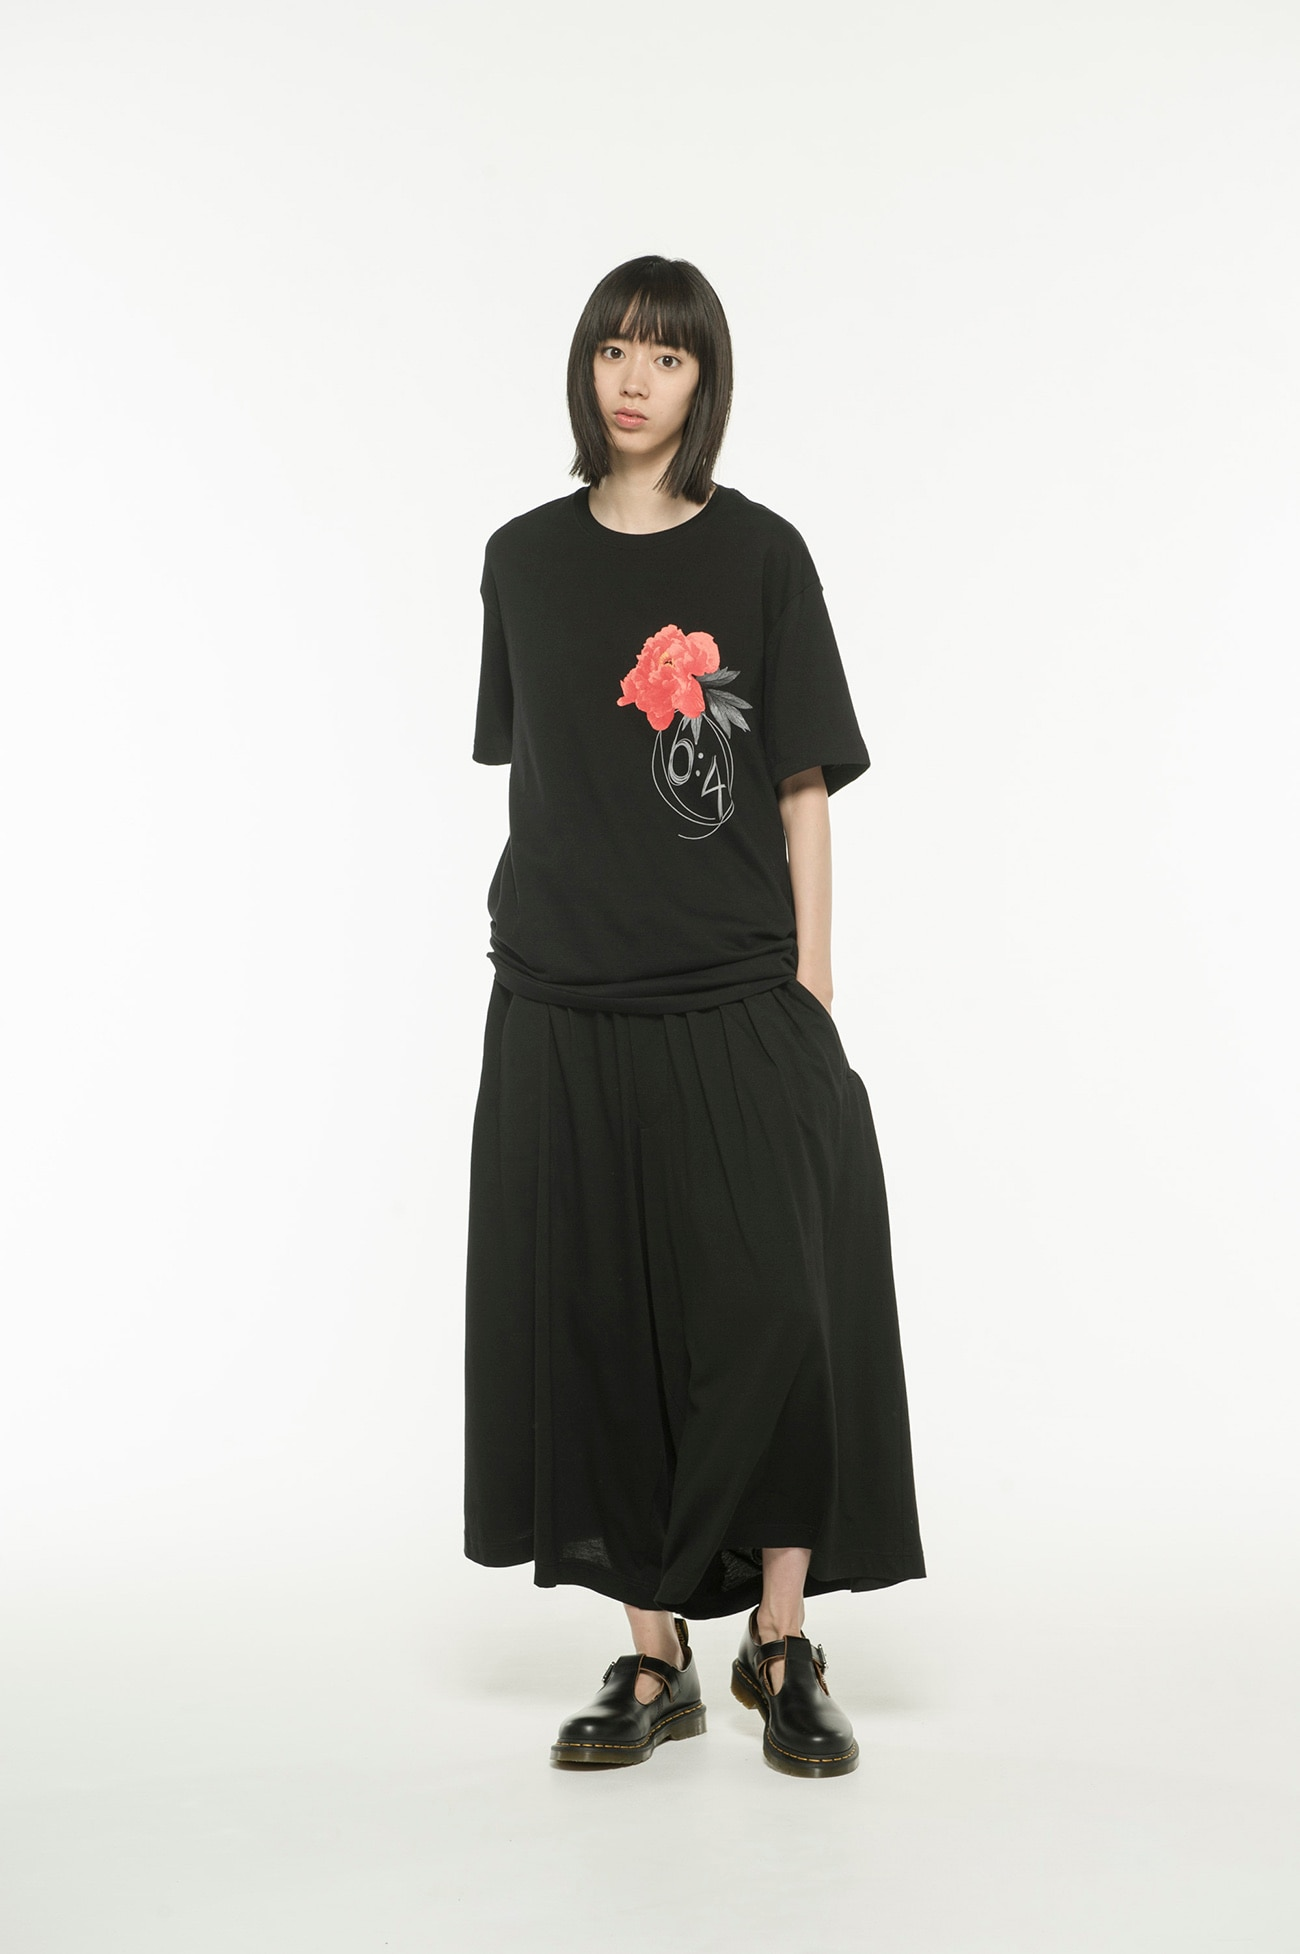 20/CottonJersey Red Peony Flower ×6:4 T-Shirt